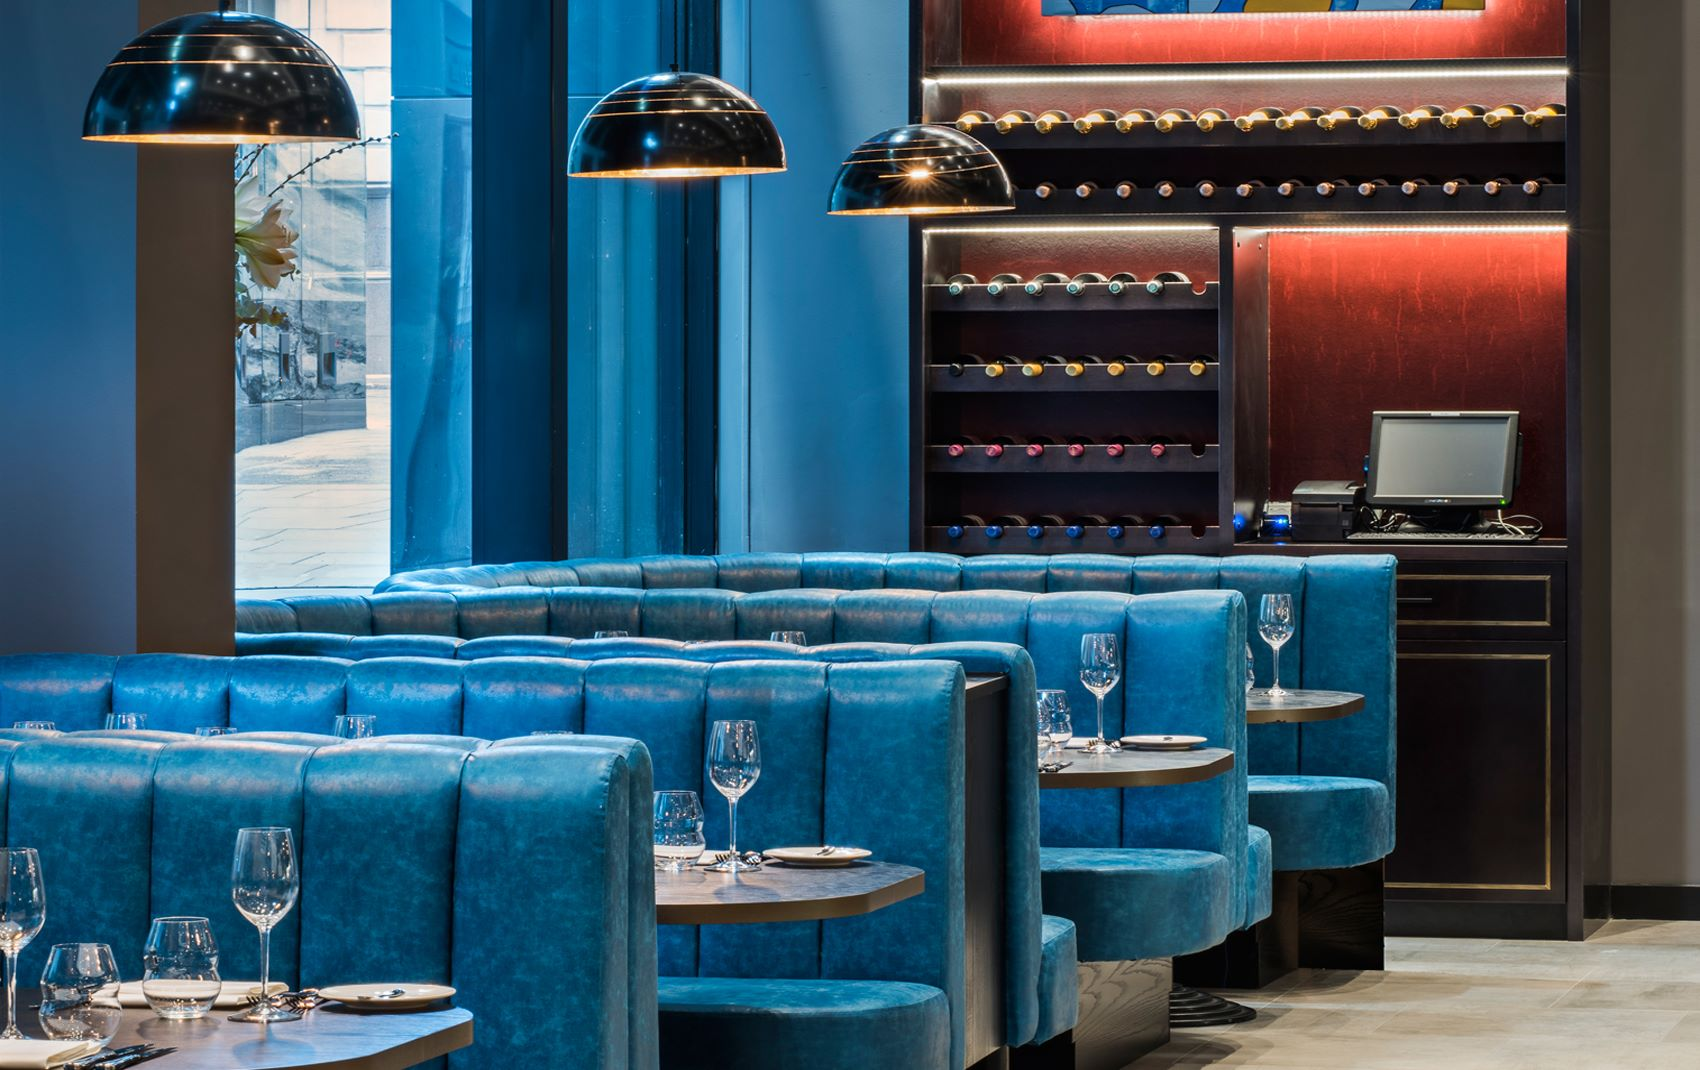 m restaurant - restaurant interior design london